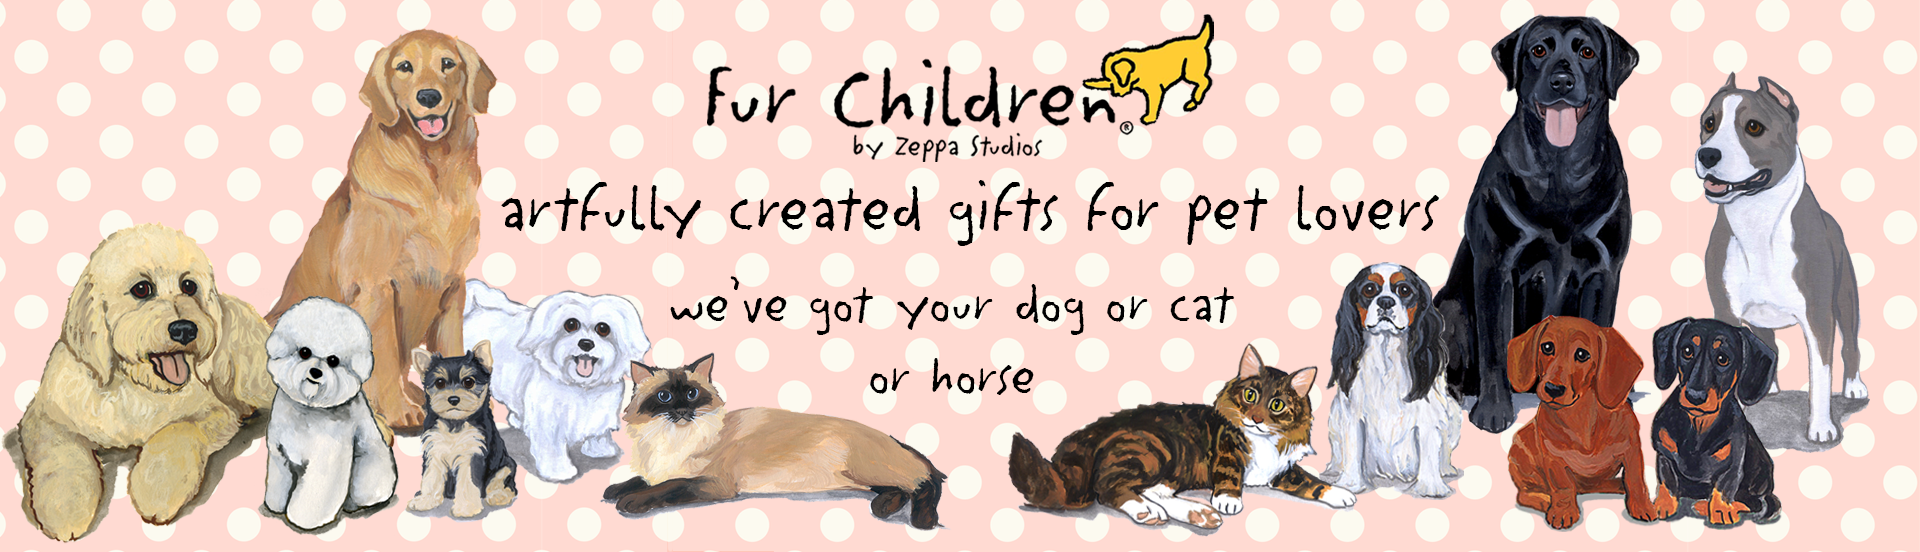 Fur Children Artfully Created Gifts for Pet Lovers  - we've got your dog